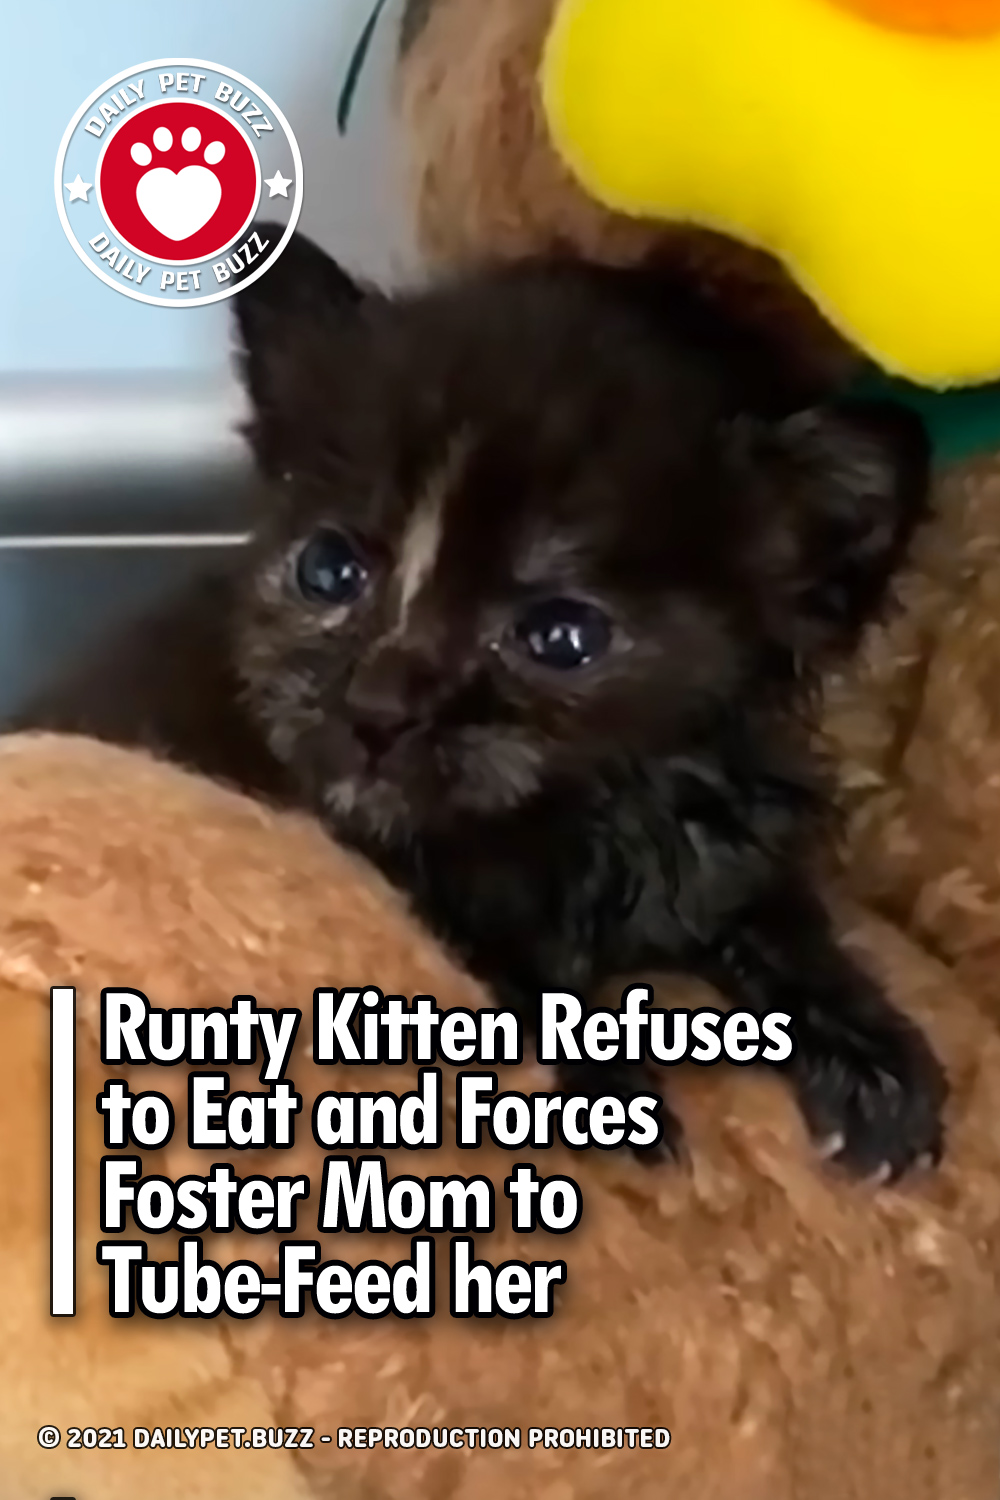 Runty Kitten Refuses to Eat and Forces Foster Mom to Tube-Feed her